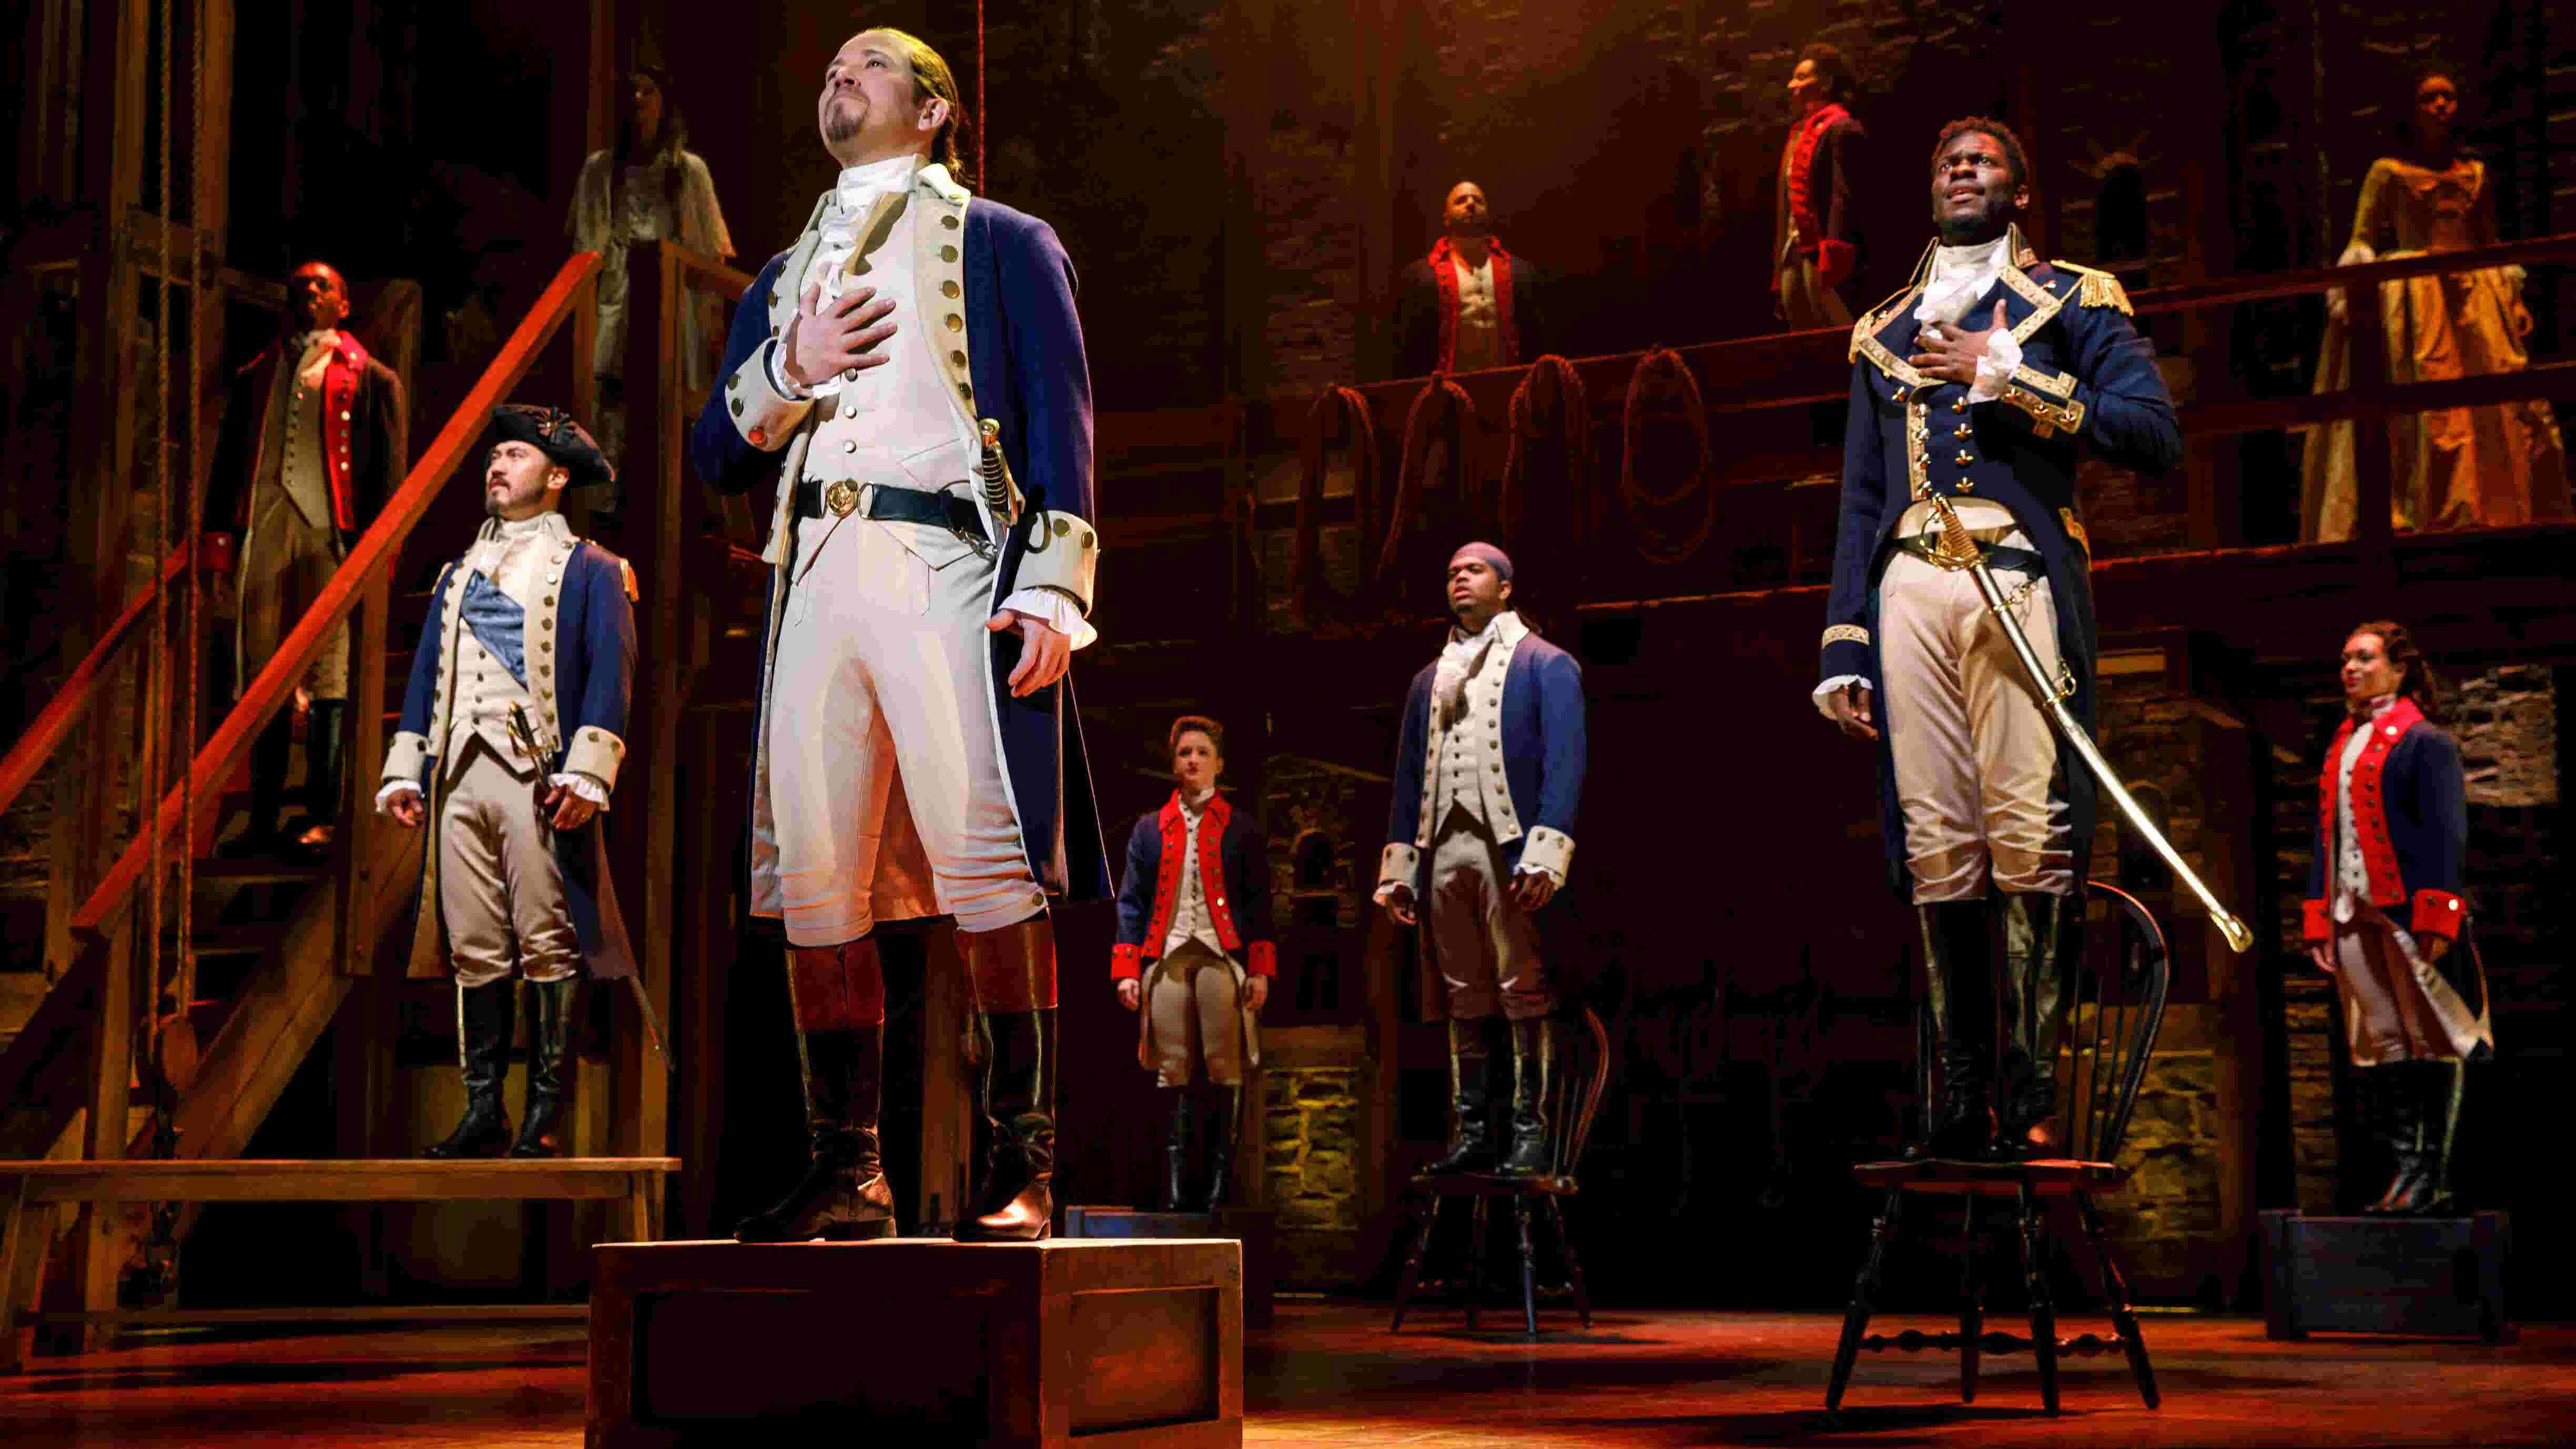 'Hamilton' leads roster of Broadway shows in Indianapolis